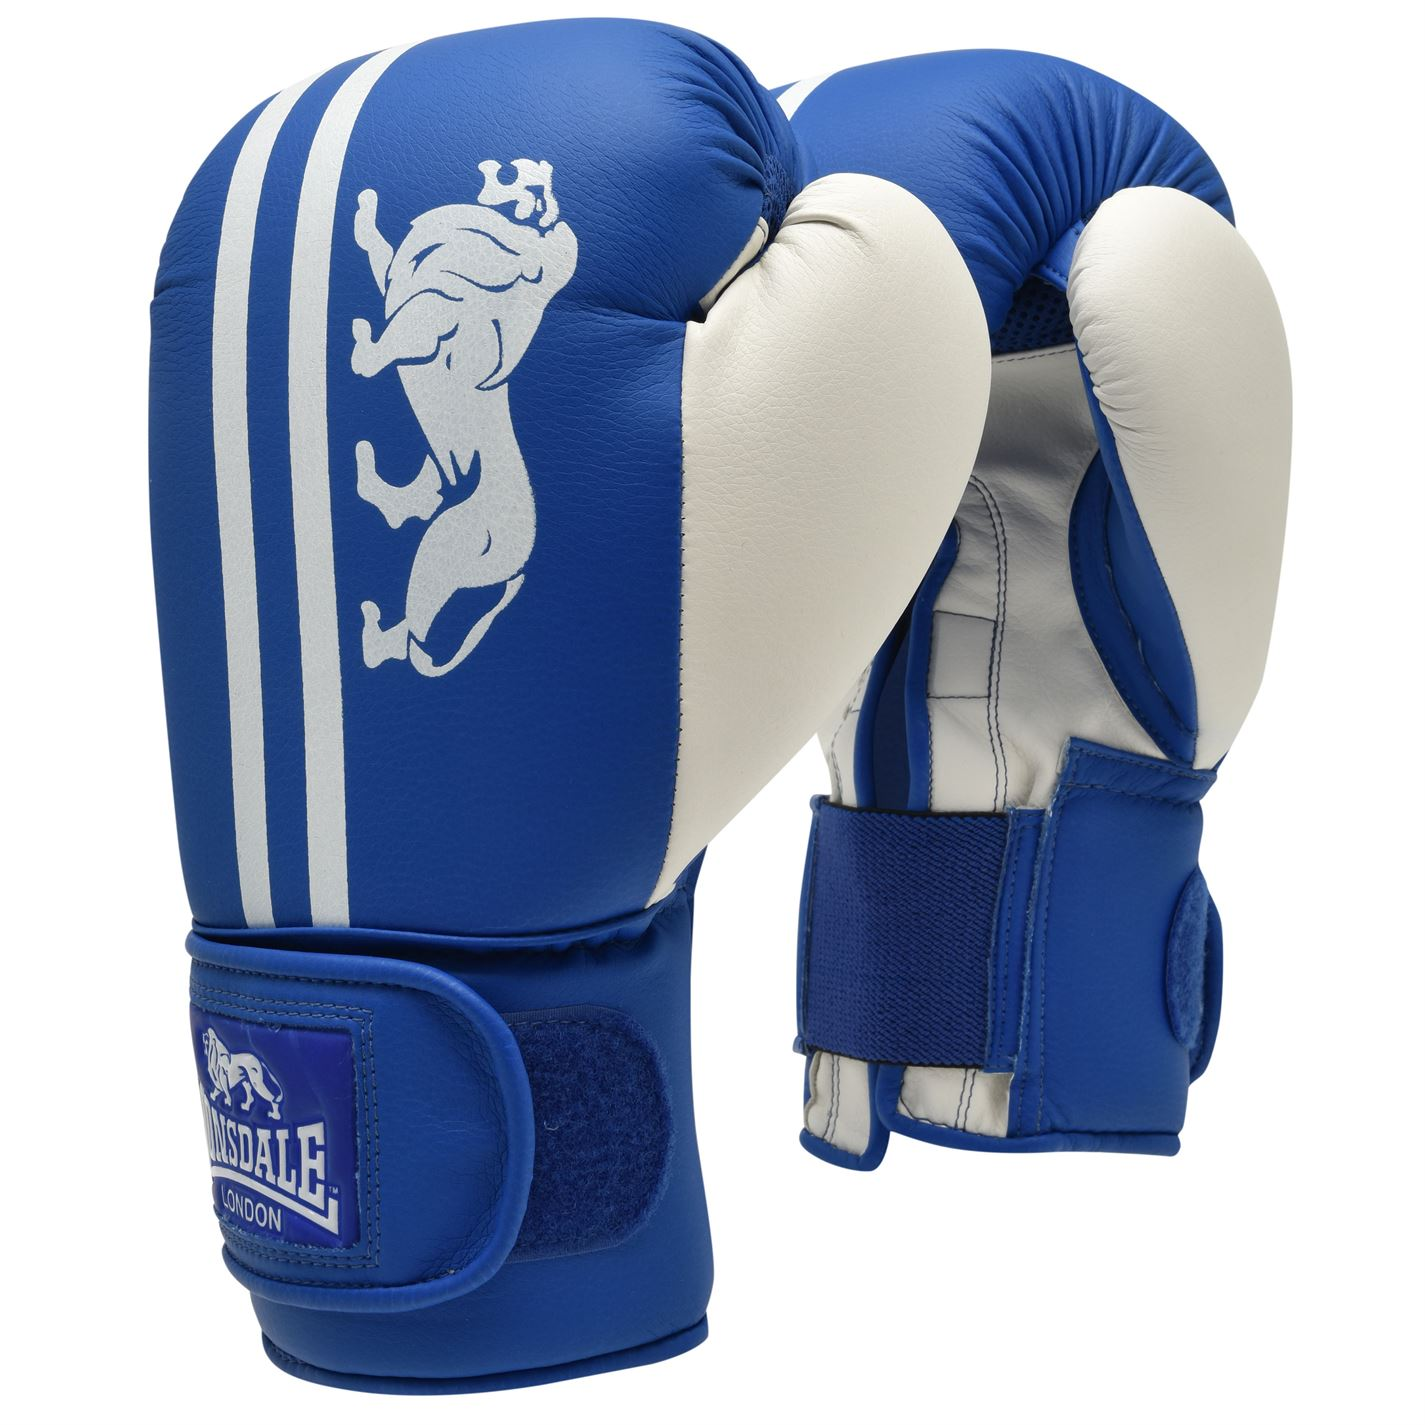 Professional Boxing Sparring Gloves Cowhide Leather MMA Fight Punch Bag Training